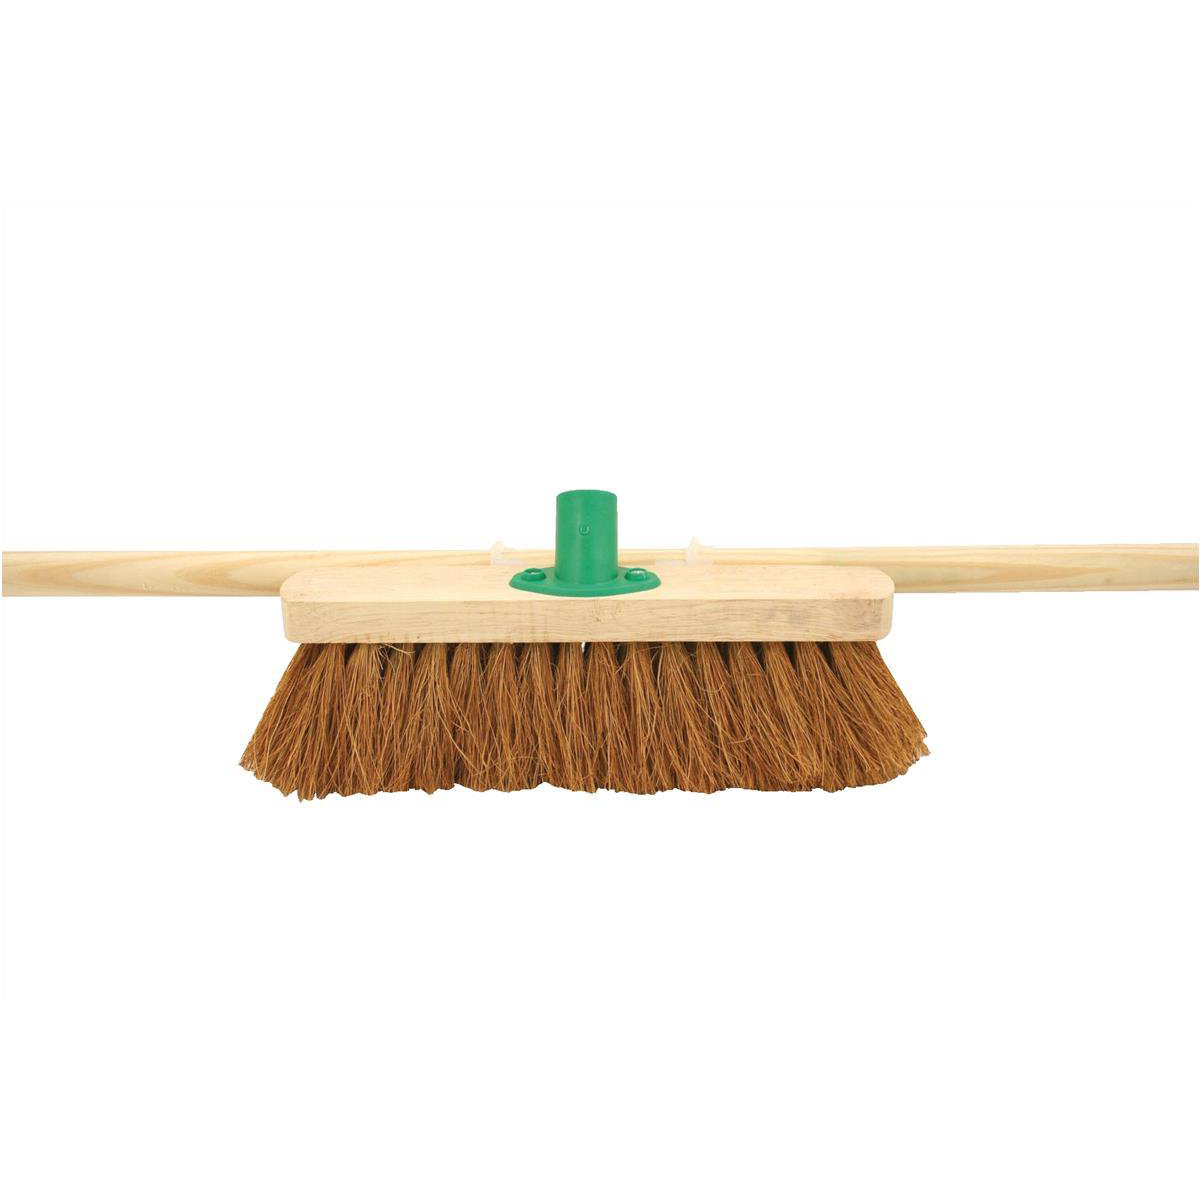 Brushes & Brooms Bentley 12inch Soft Coco Broom Head with Handle & Push fit Plastic Bracket Ref SPC/F01BKT/C4